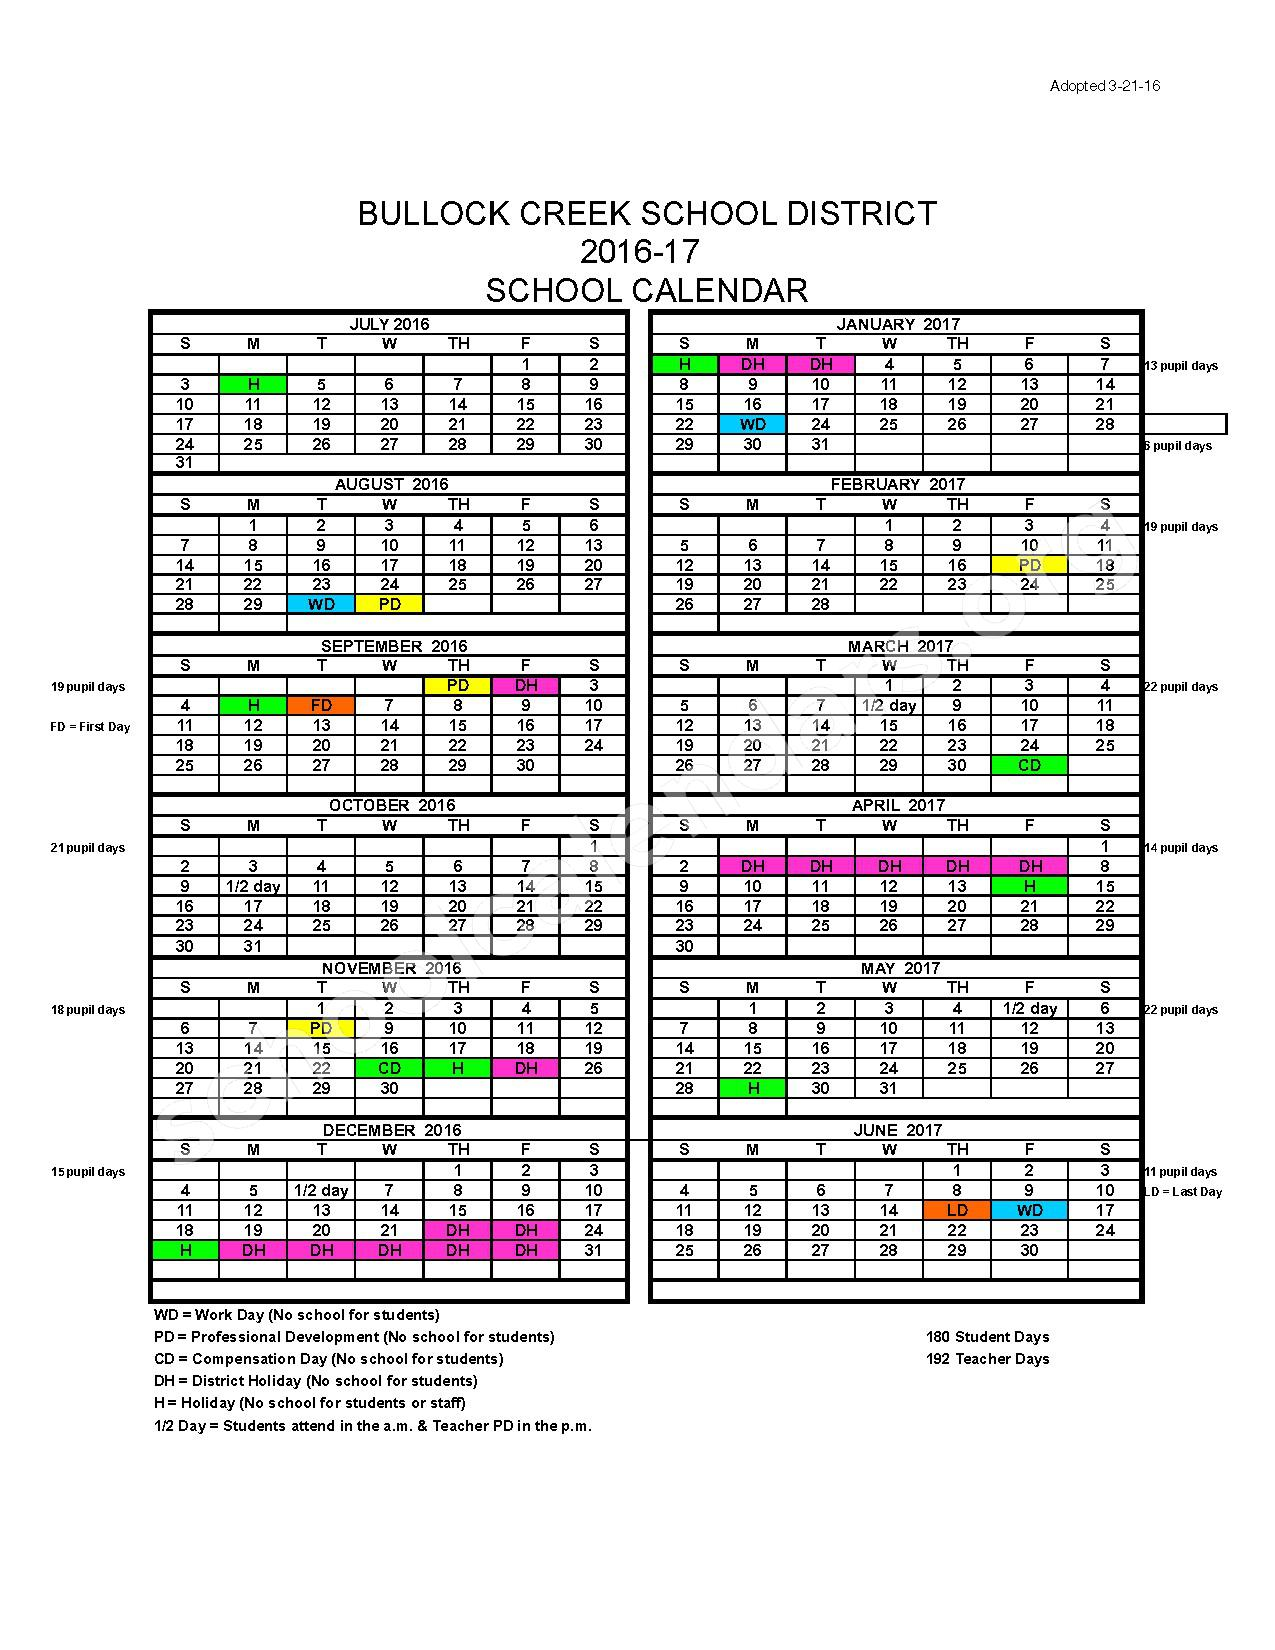 2016 - 2017 School Calendar – Bullock Creek School District – page 1